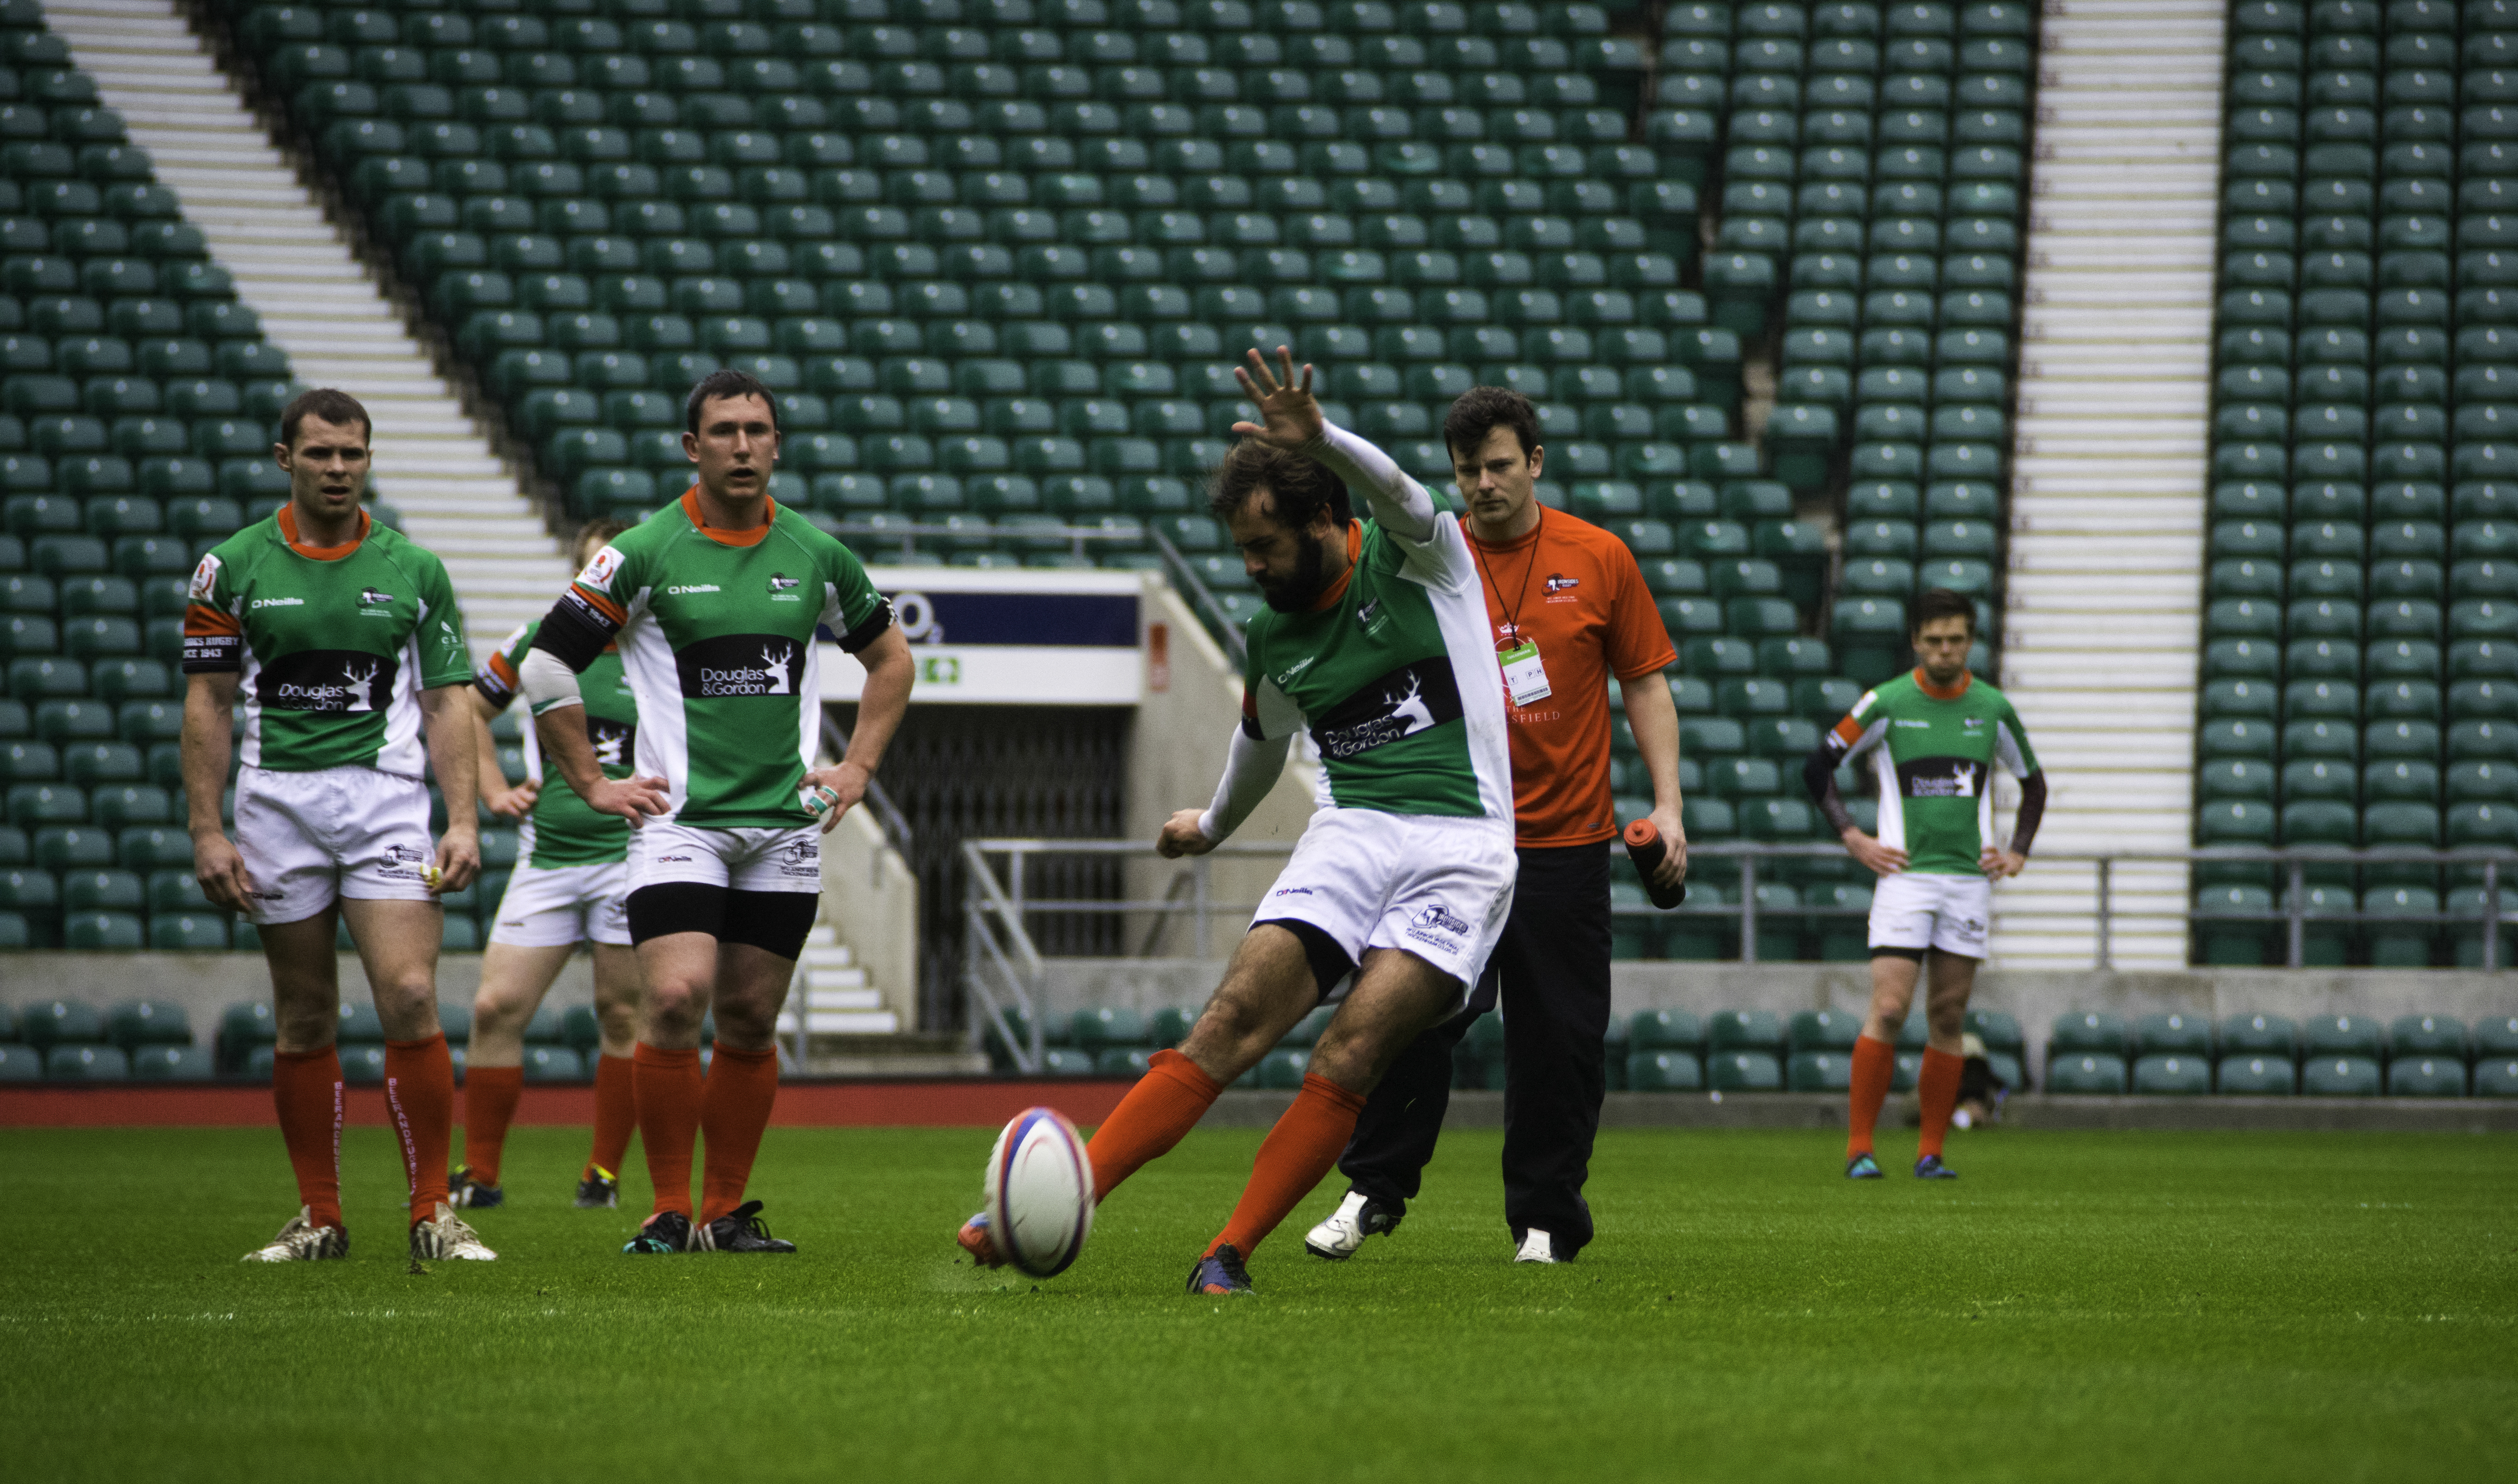 Ironsides Rugby Case Study